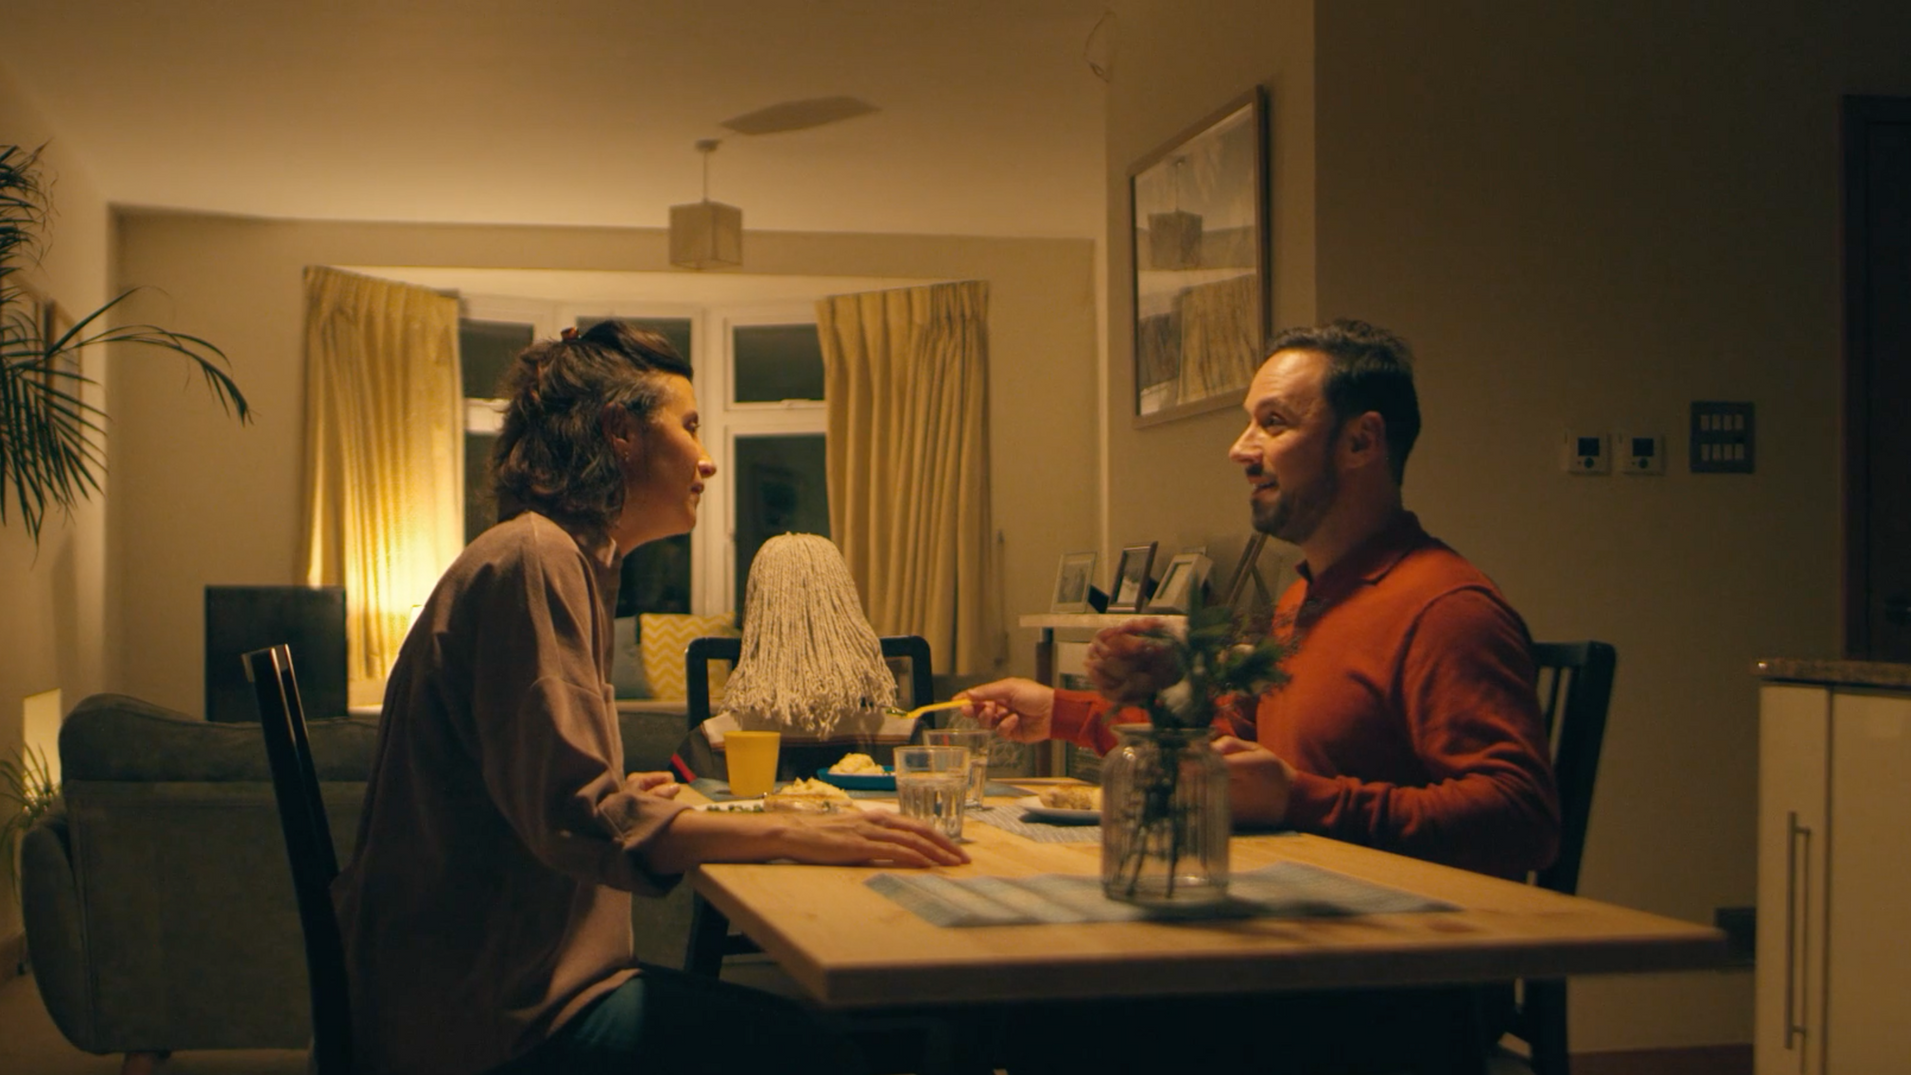 Little Acorn Fostering - Flat 14 Films - Theo Gulernter and Ian Bousher